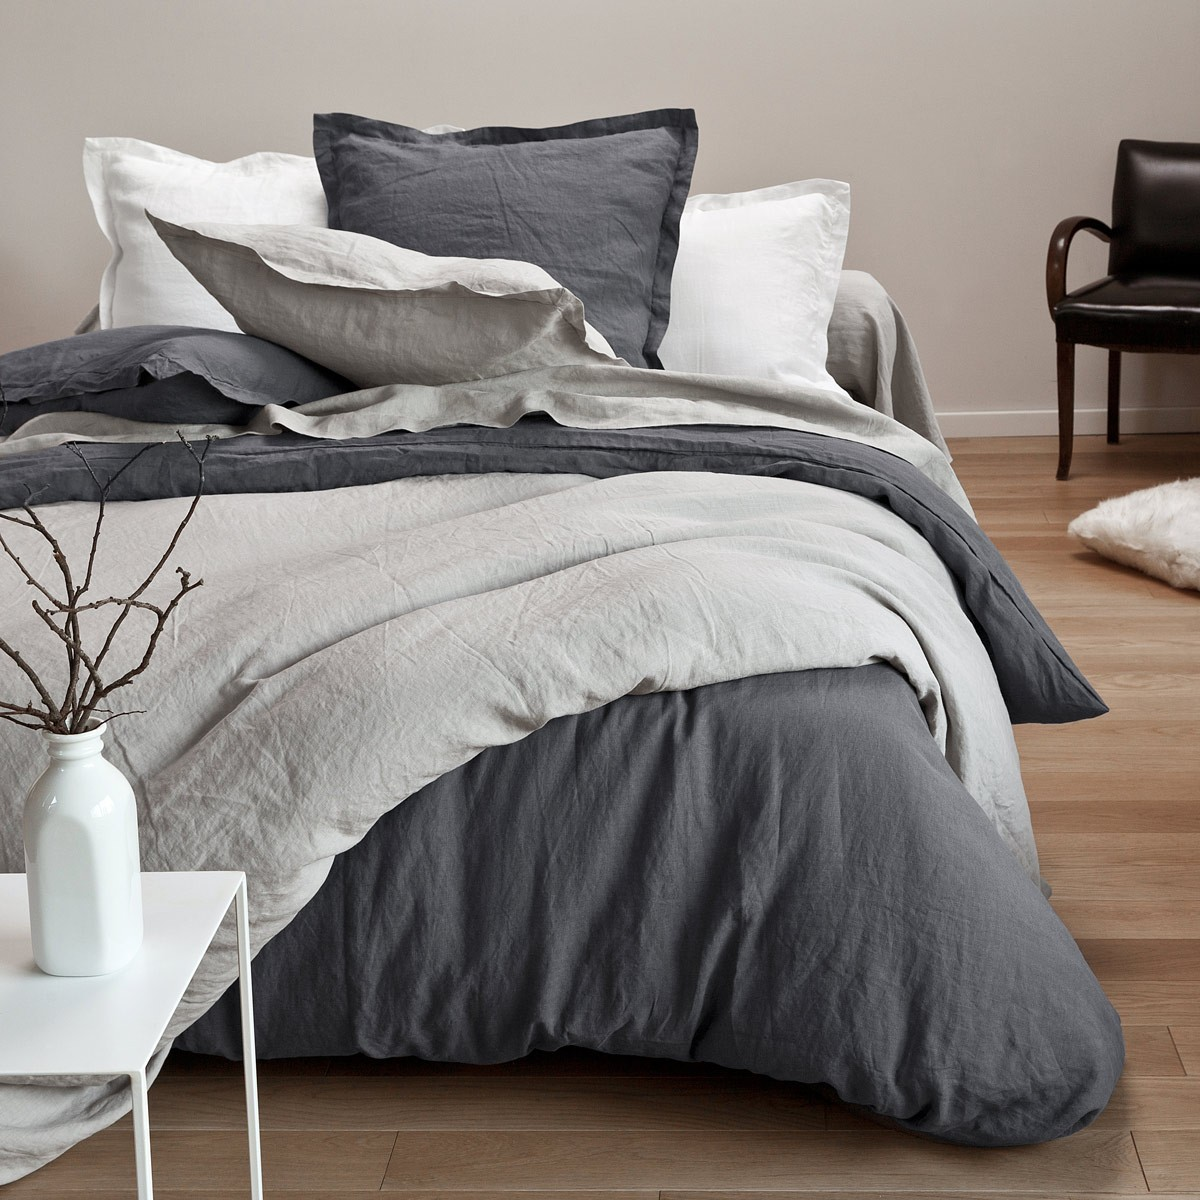 washed linen bed linen set french linen house tradition des vosges. Black Bedroom Furniture Sets. Home Design Ideas